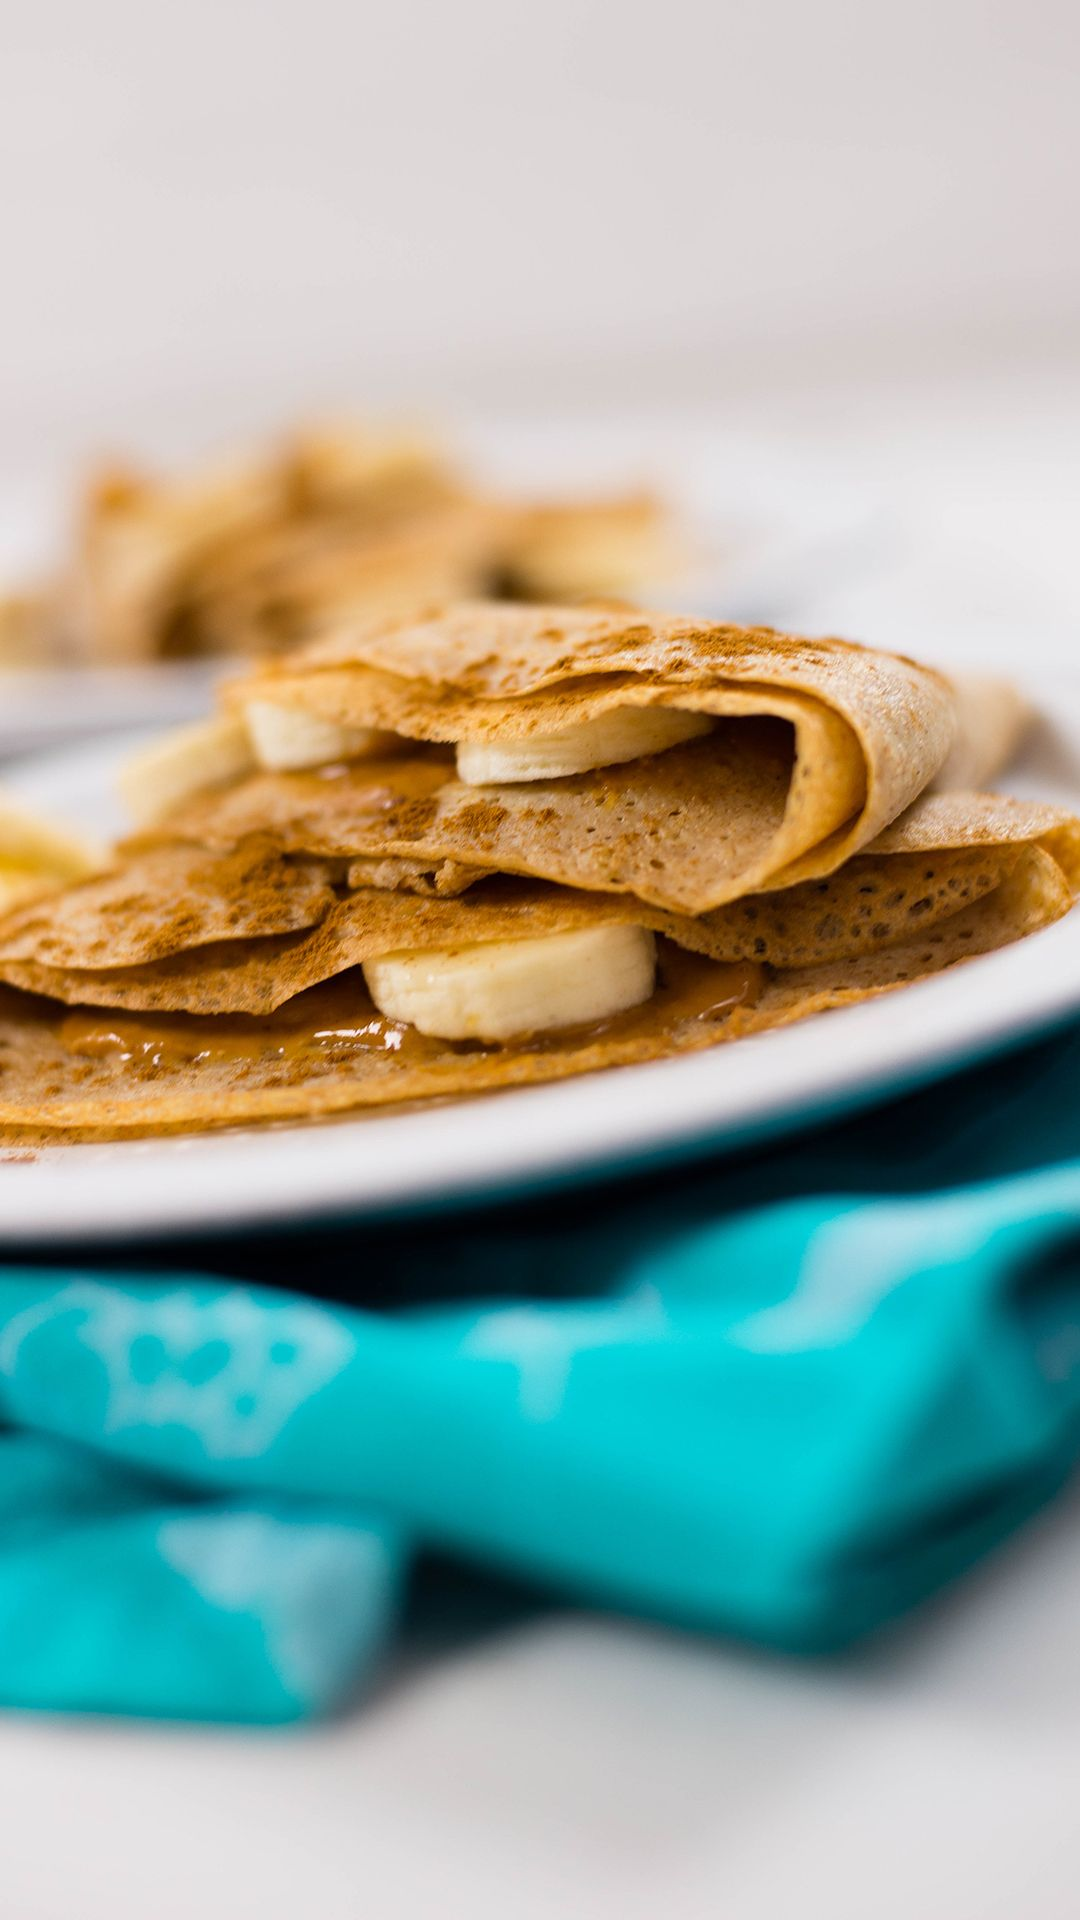 Healthy Crêpes images